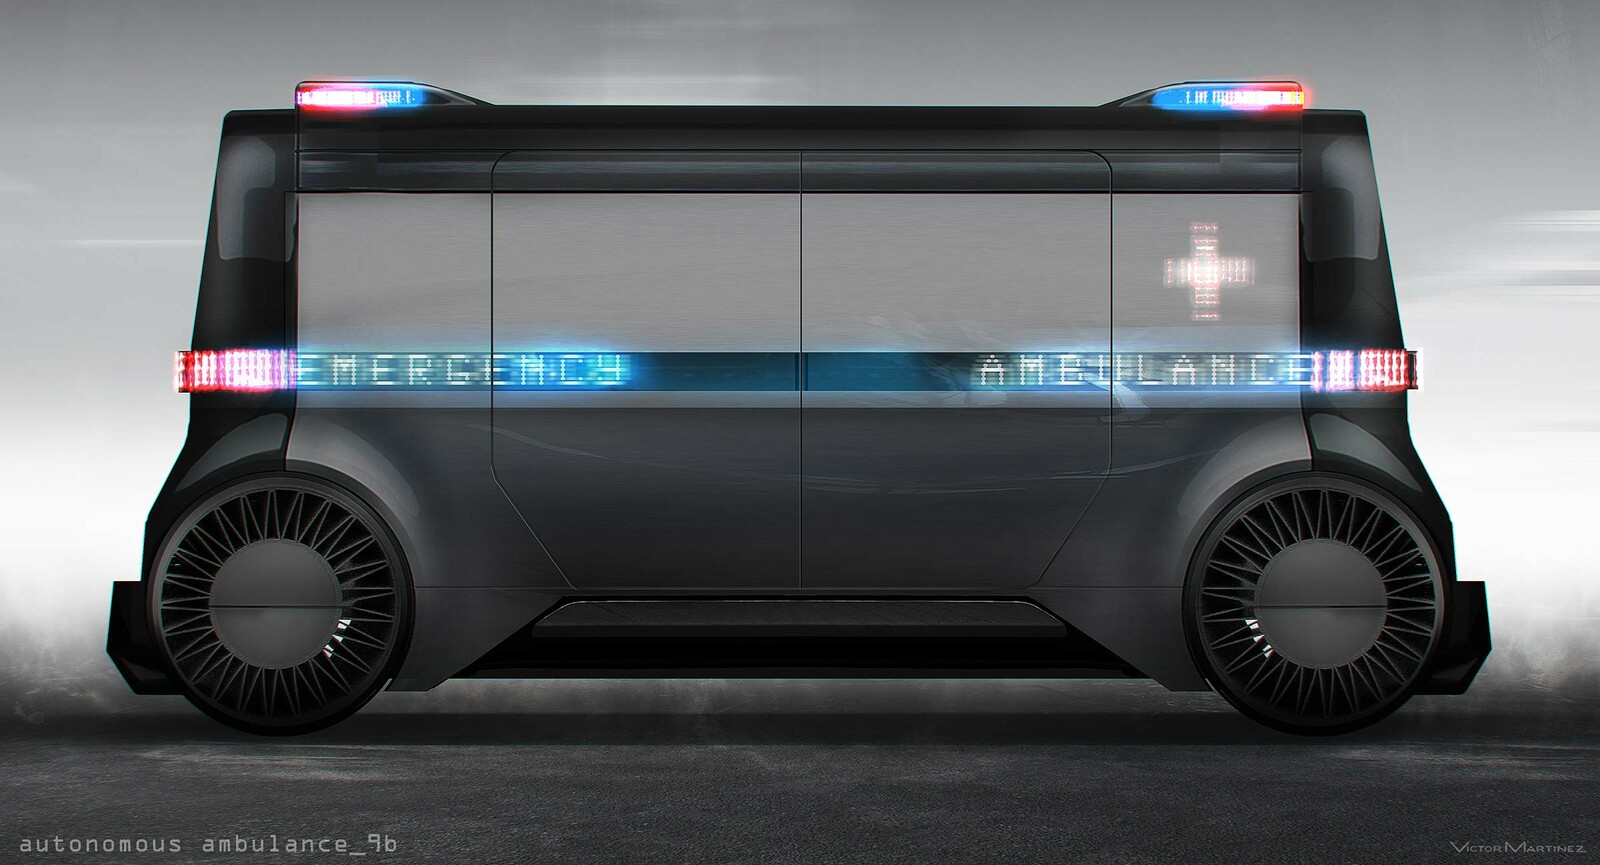 Westworld Autonomous Ambulance (early concept) - designed by Victor Martinez